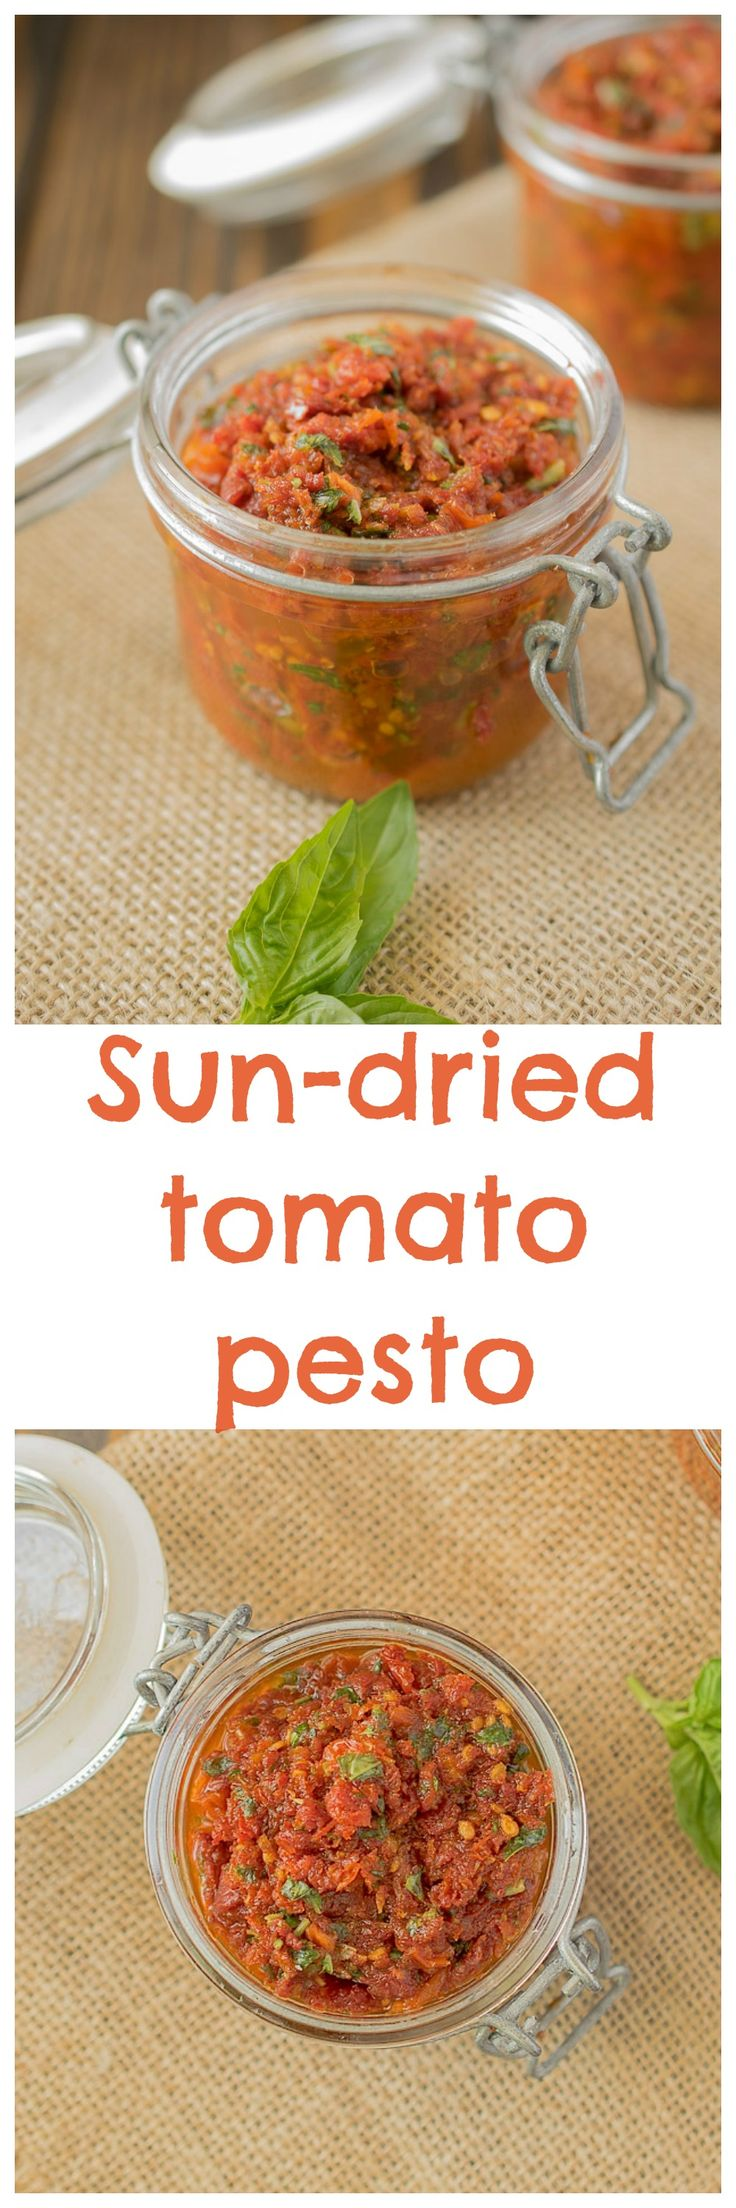 Sun-dried tomato pesto. A wonderfully diverse recipe component. Sun-dried tomato pesto is a great sauce that you can add to hot pasta or use as a dip and it's so easy to make because there's only 2 ingredients. Yes, just 2!